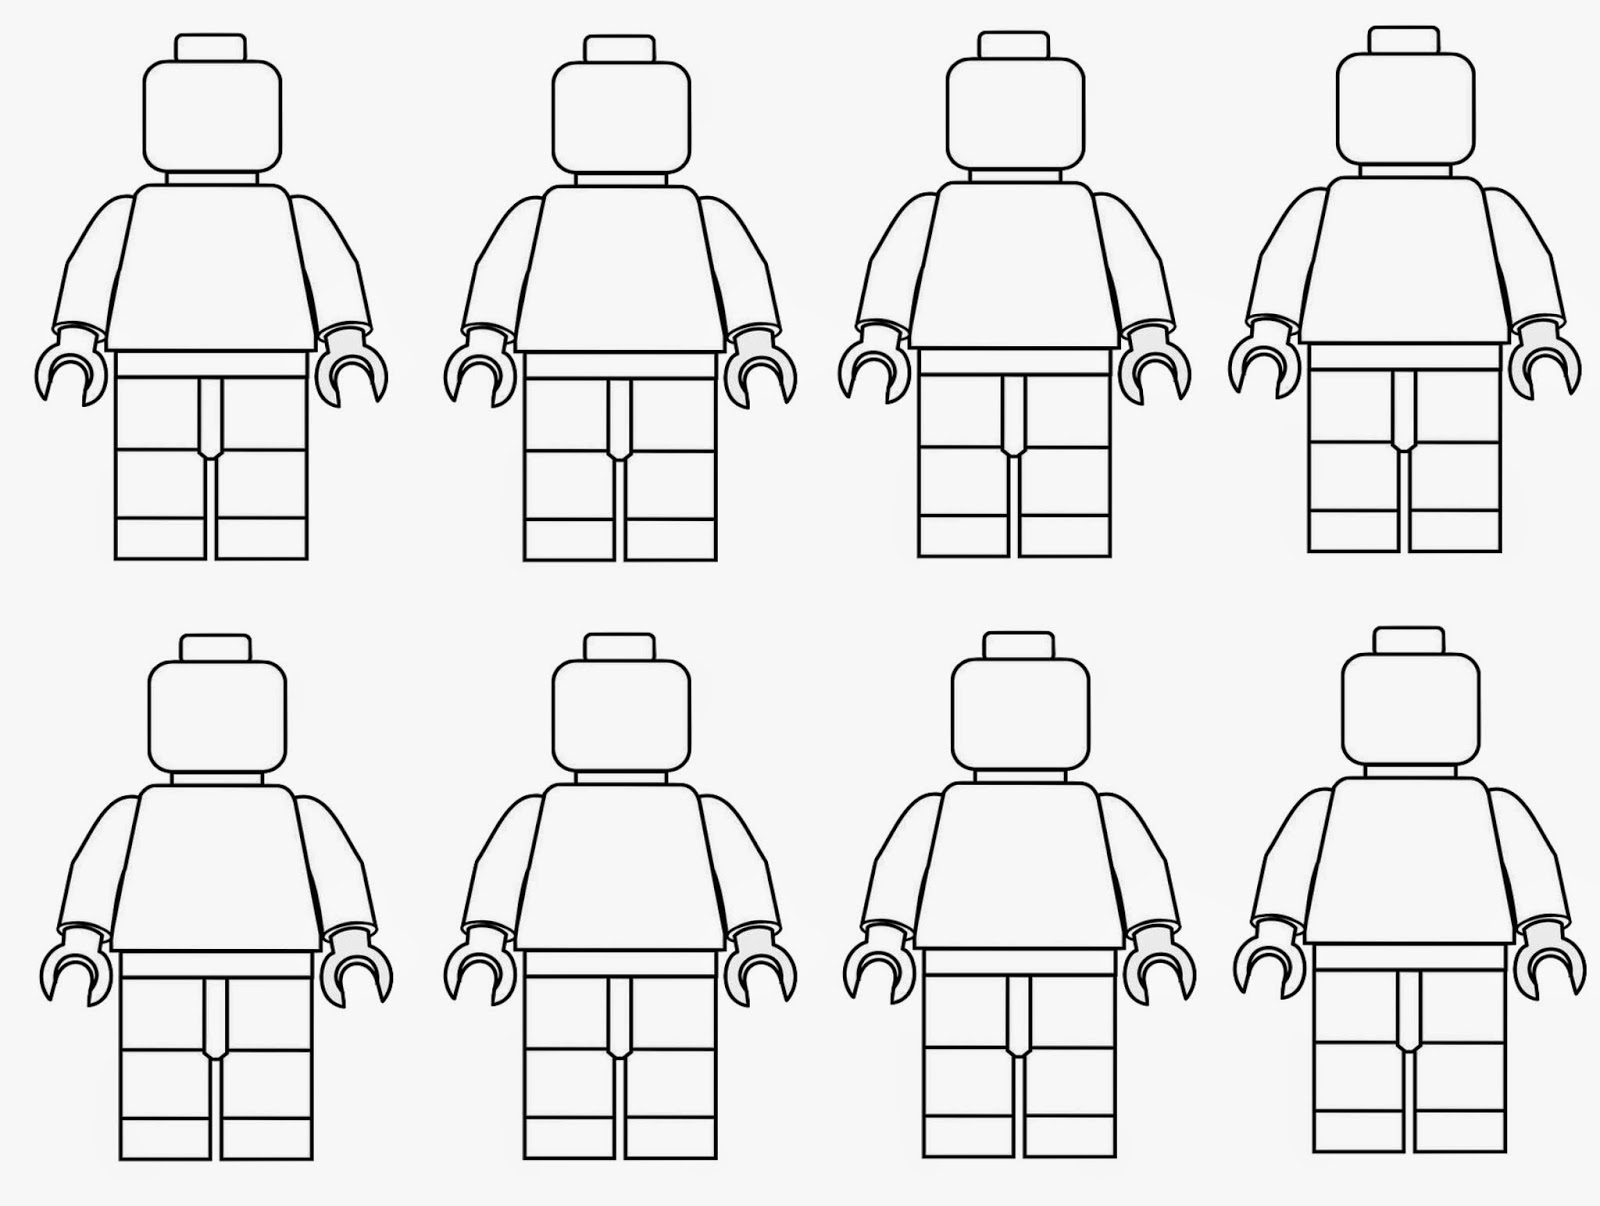 Lego Man Coloring Page at GetDrawings | Free download |Lego Man Coloring Page